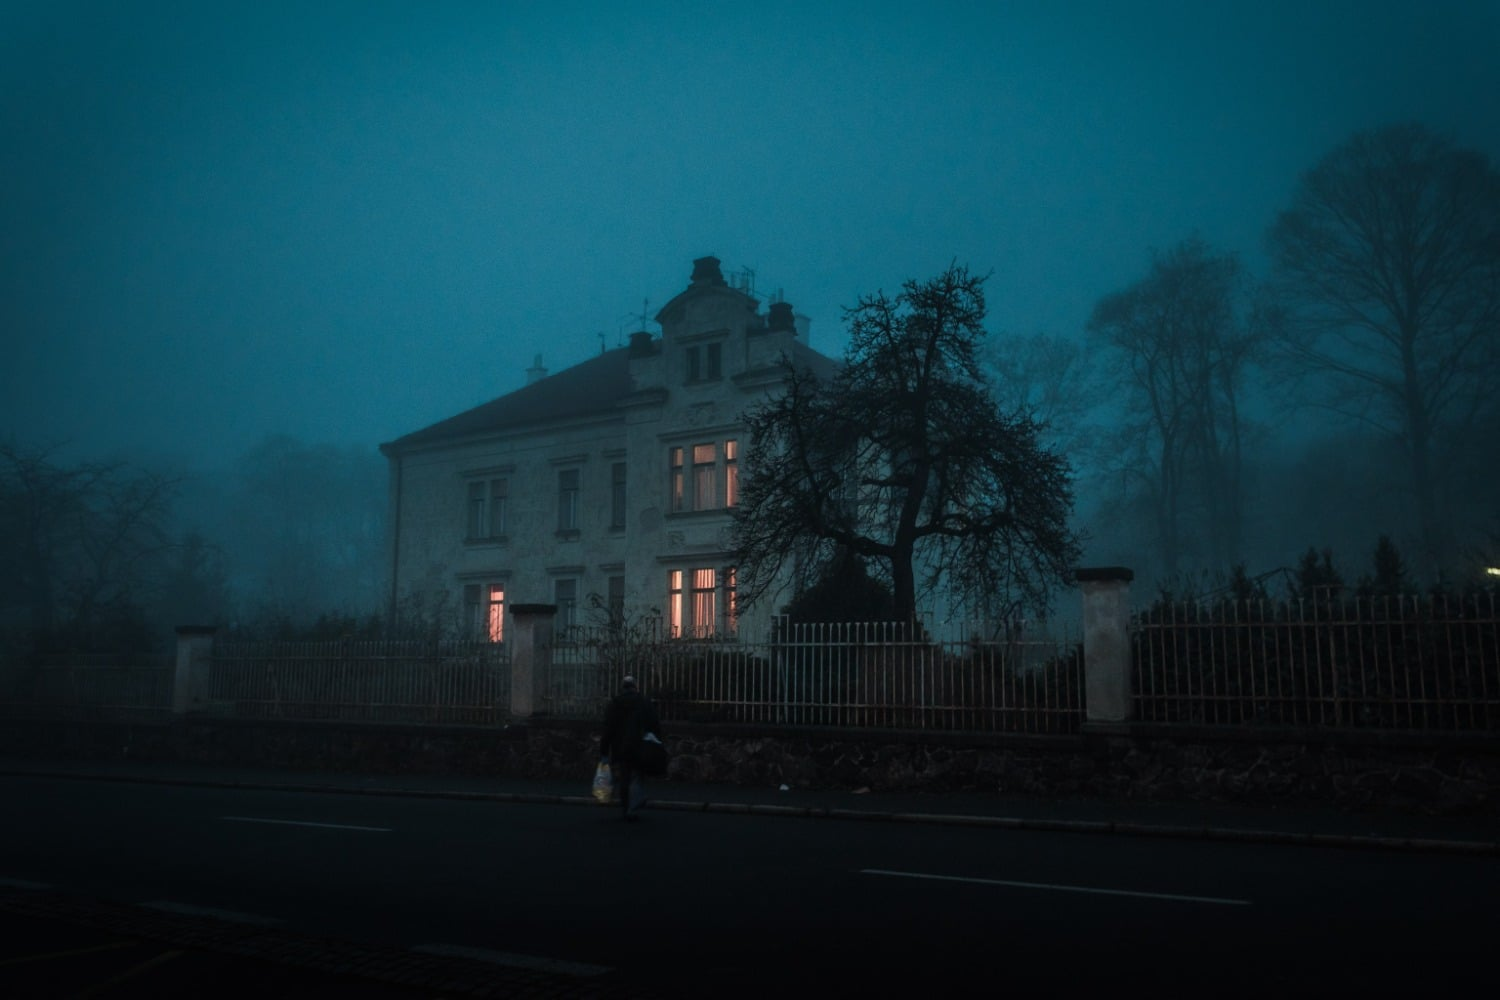 haunted house blue tone with lights on inside